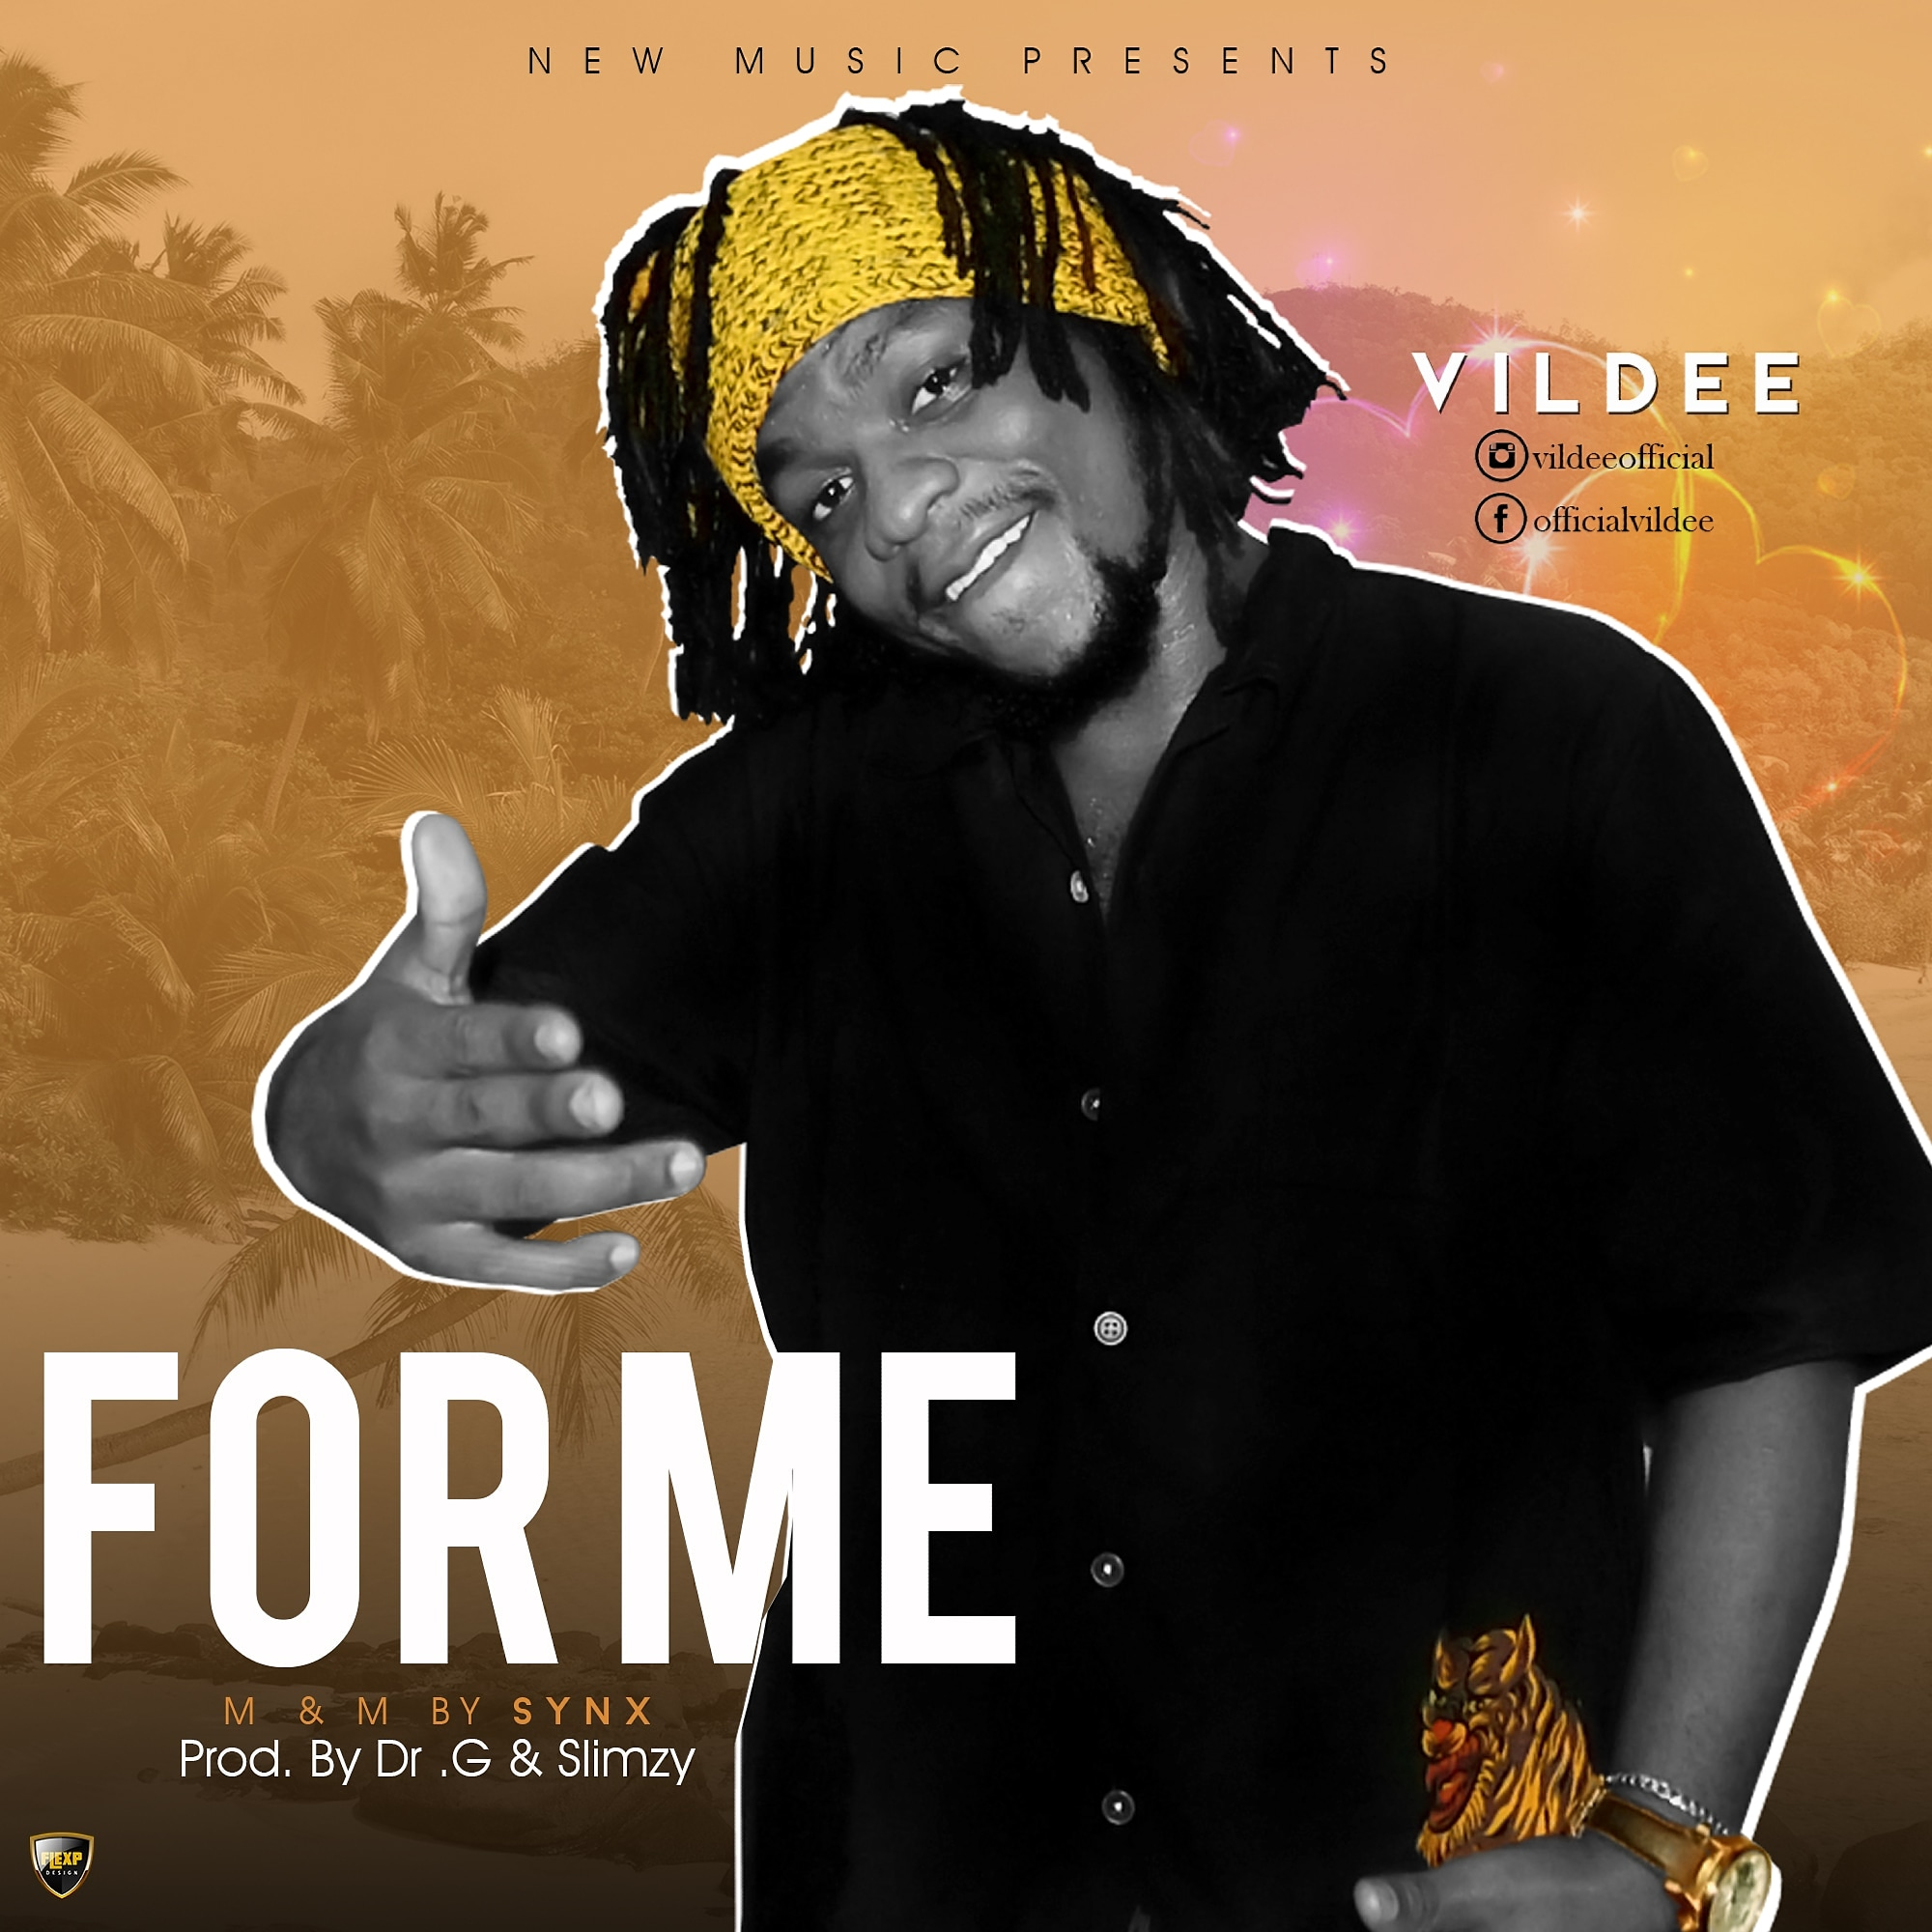 Download Vildee For Me Mp3 Download